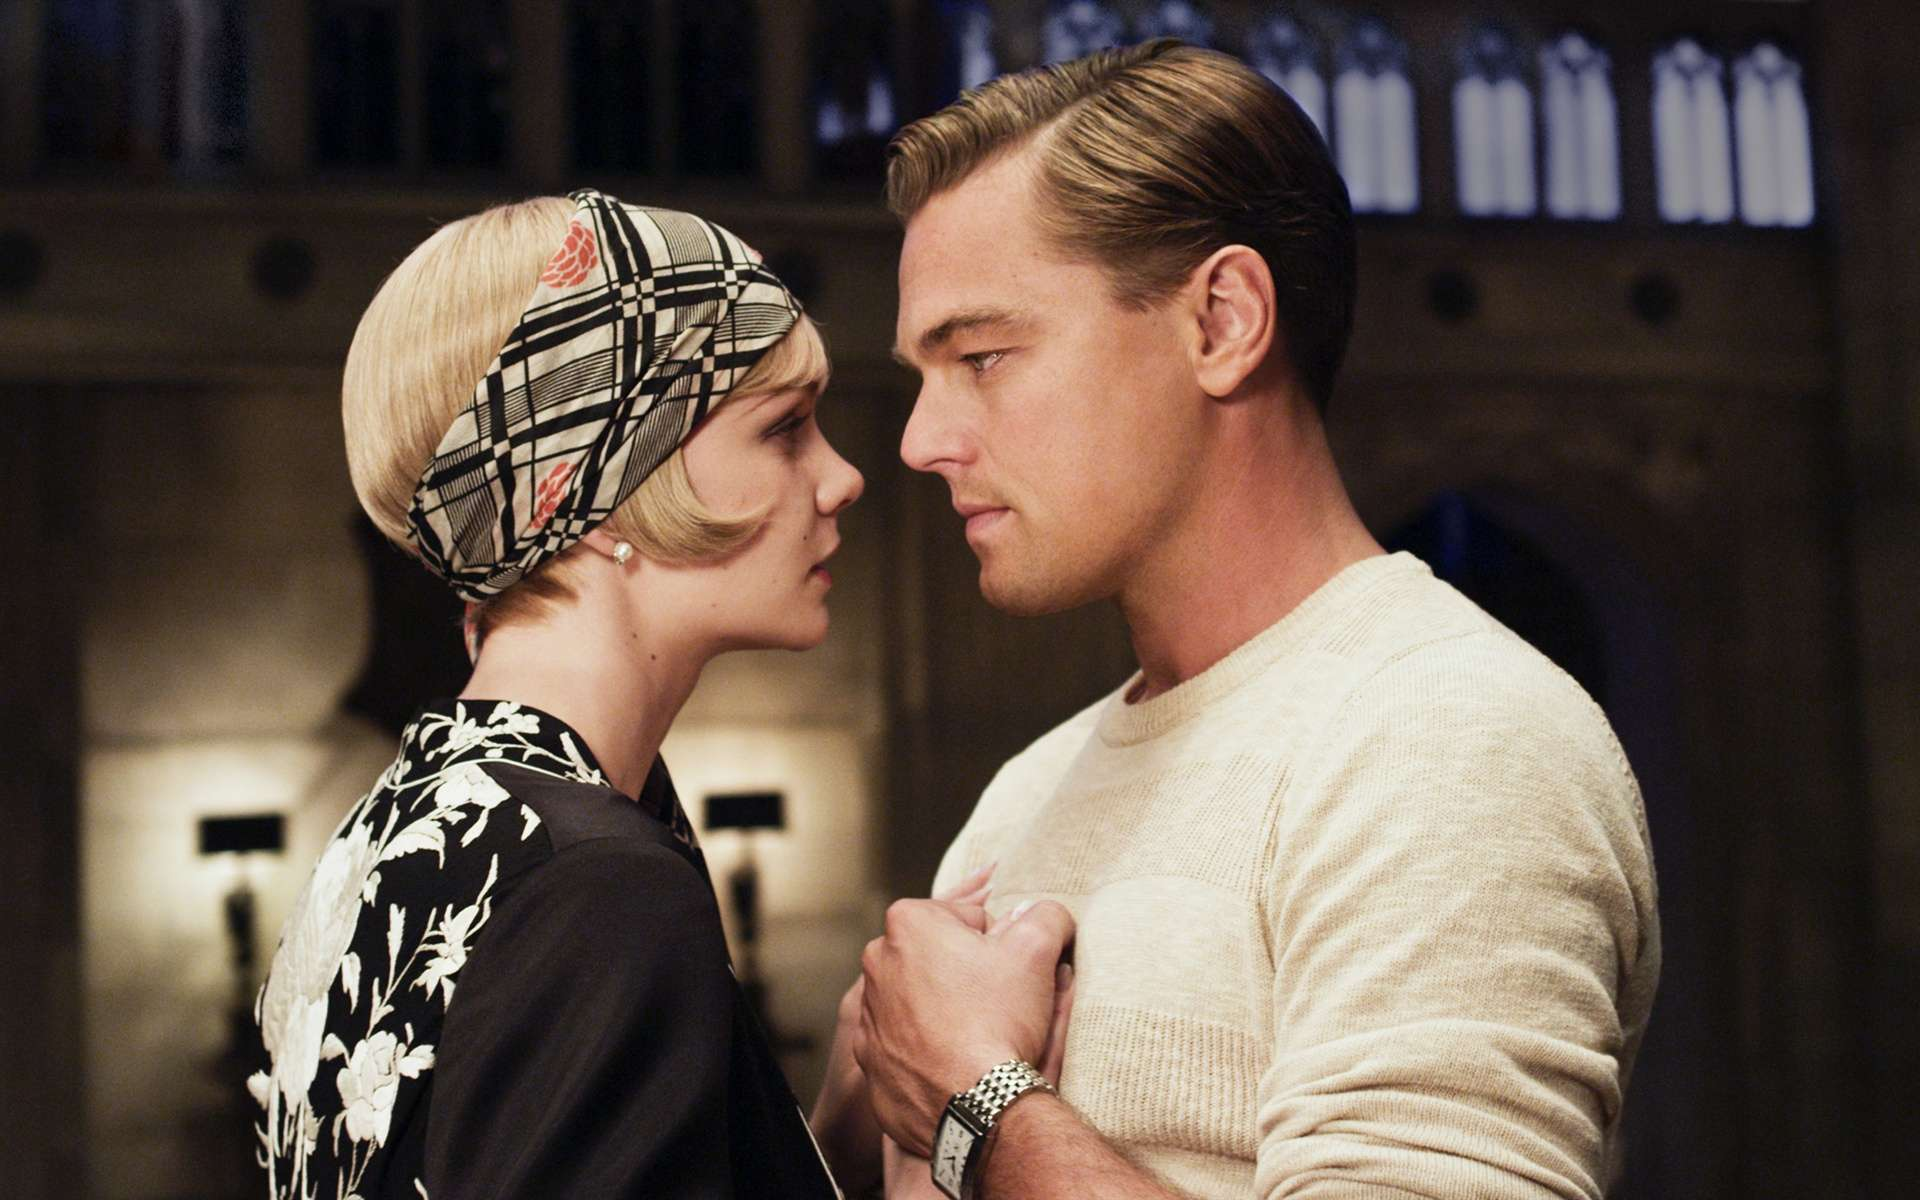 The Great Gatsby couple